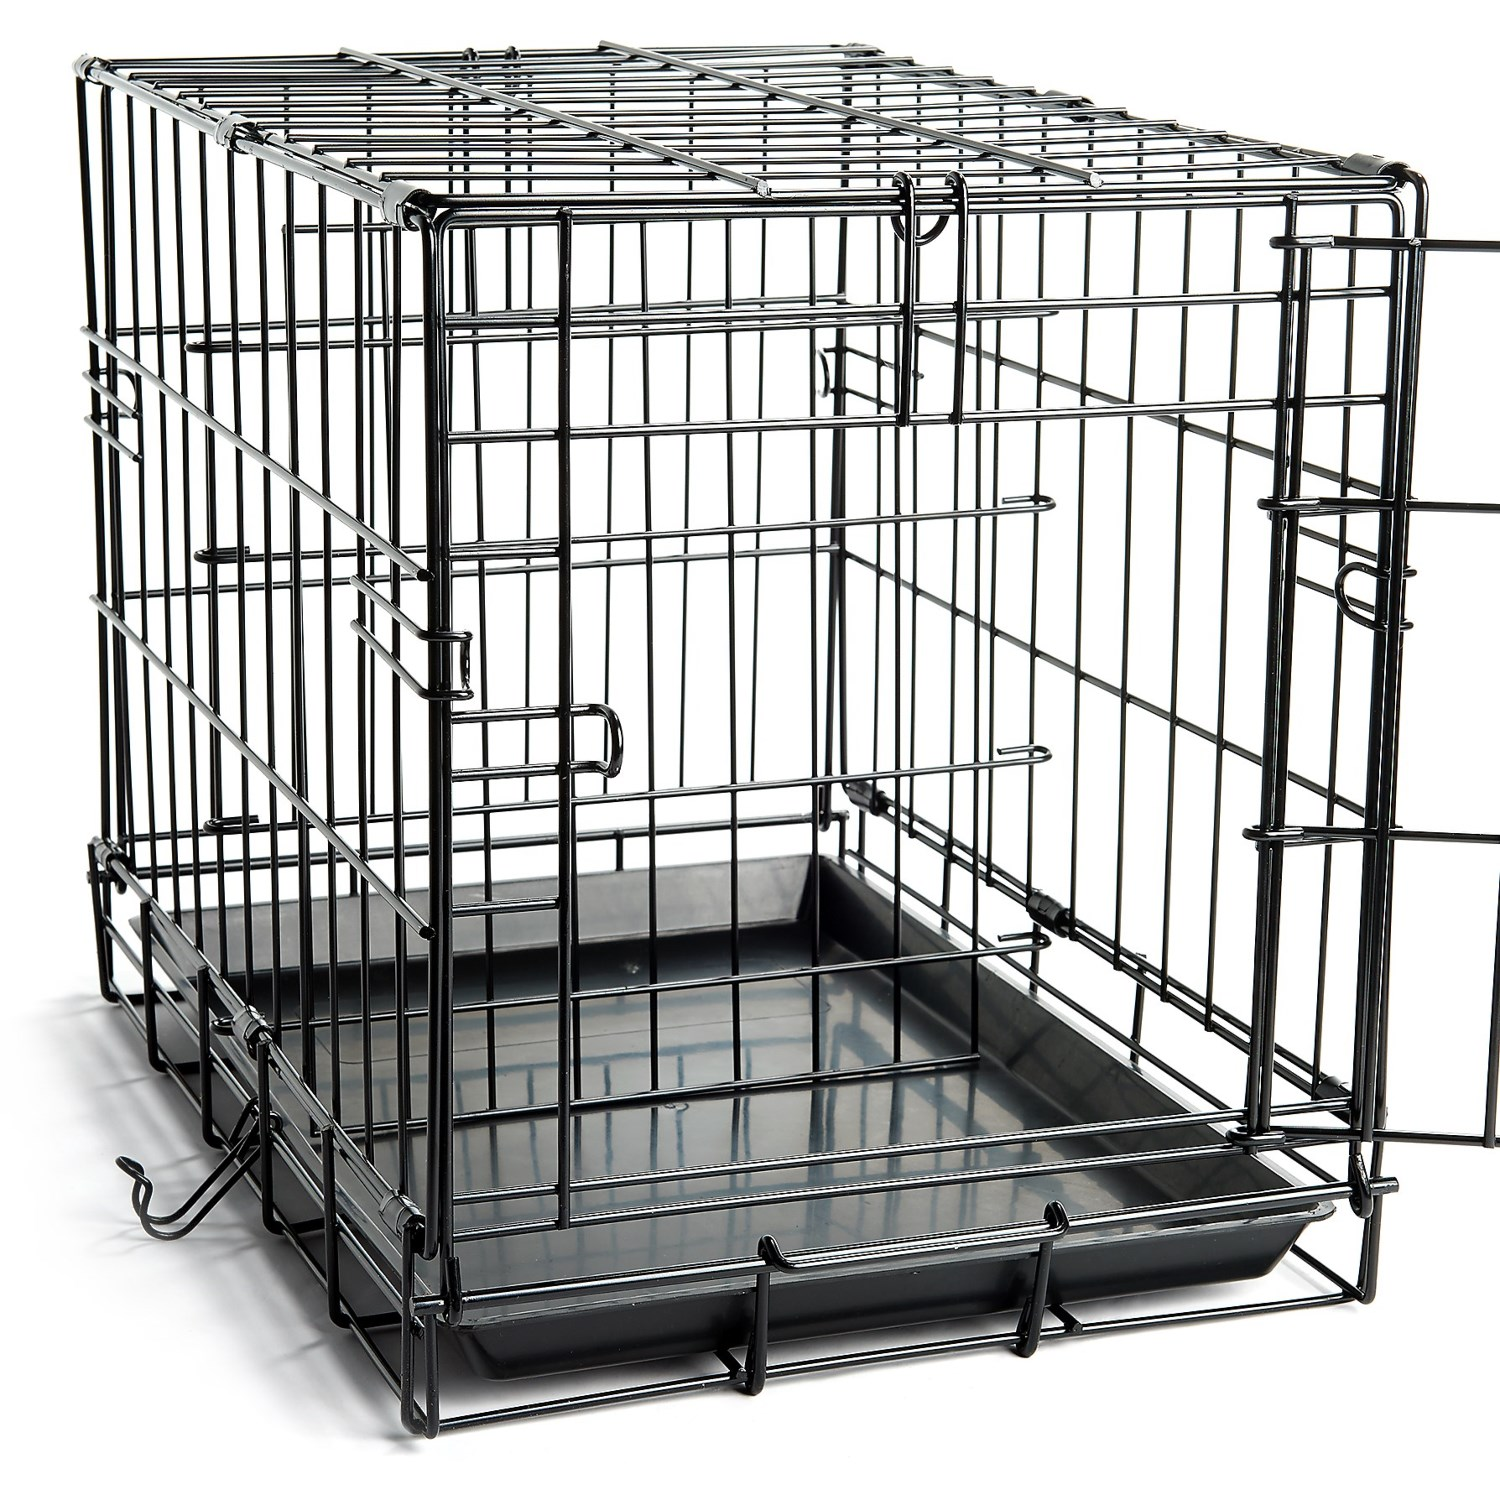 be good easy pet crate  extra small  save  - be good easy pet crate  extra small